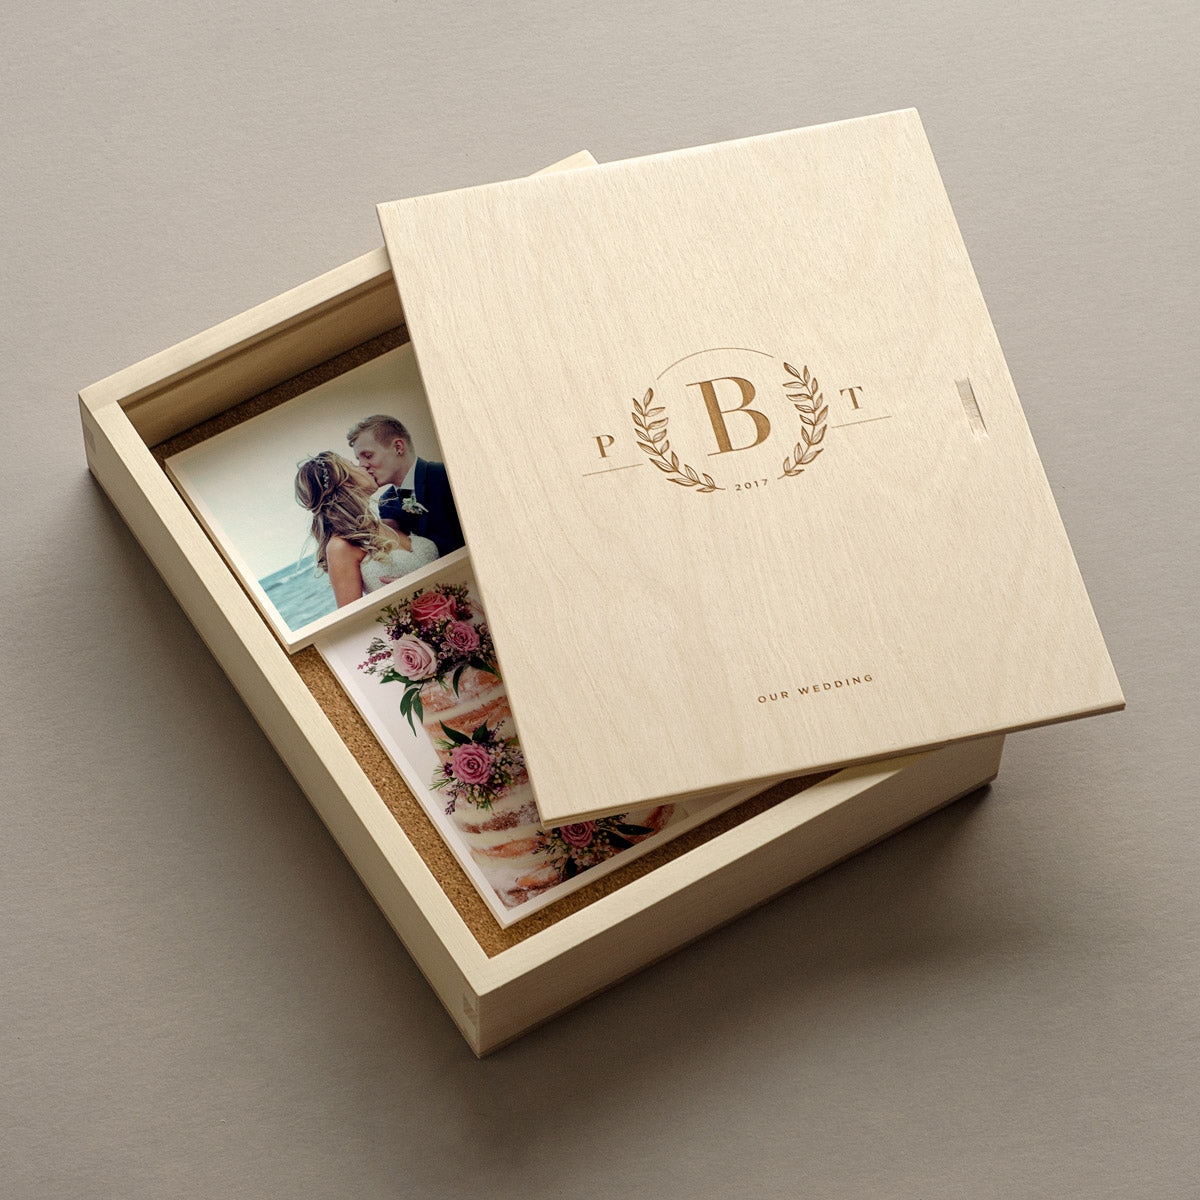 Keepsake Photo Box - The Producer